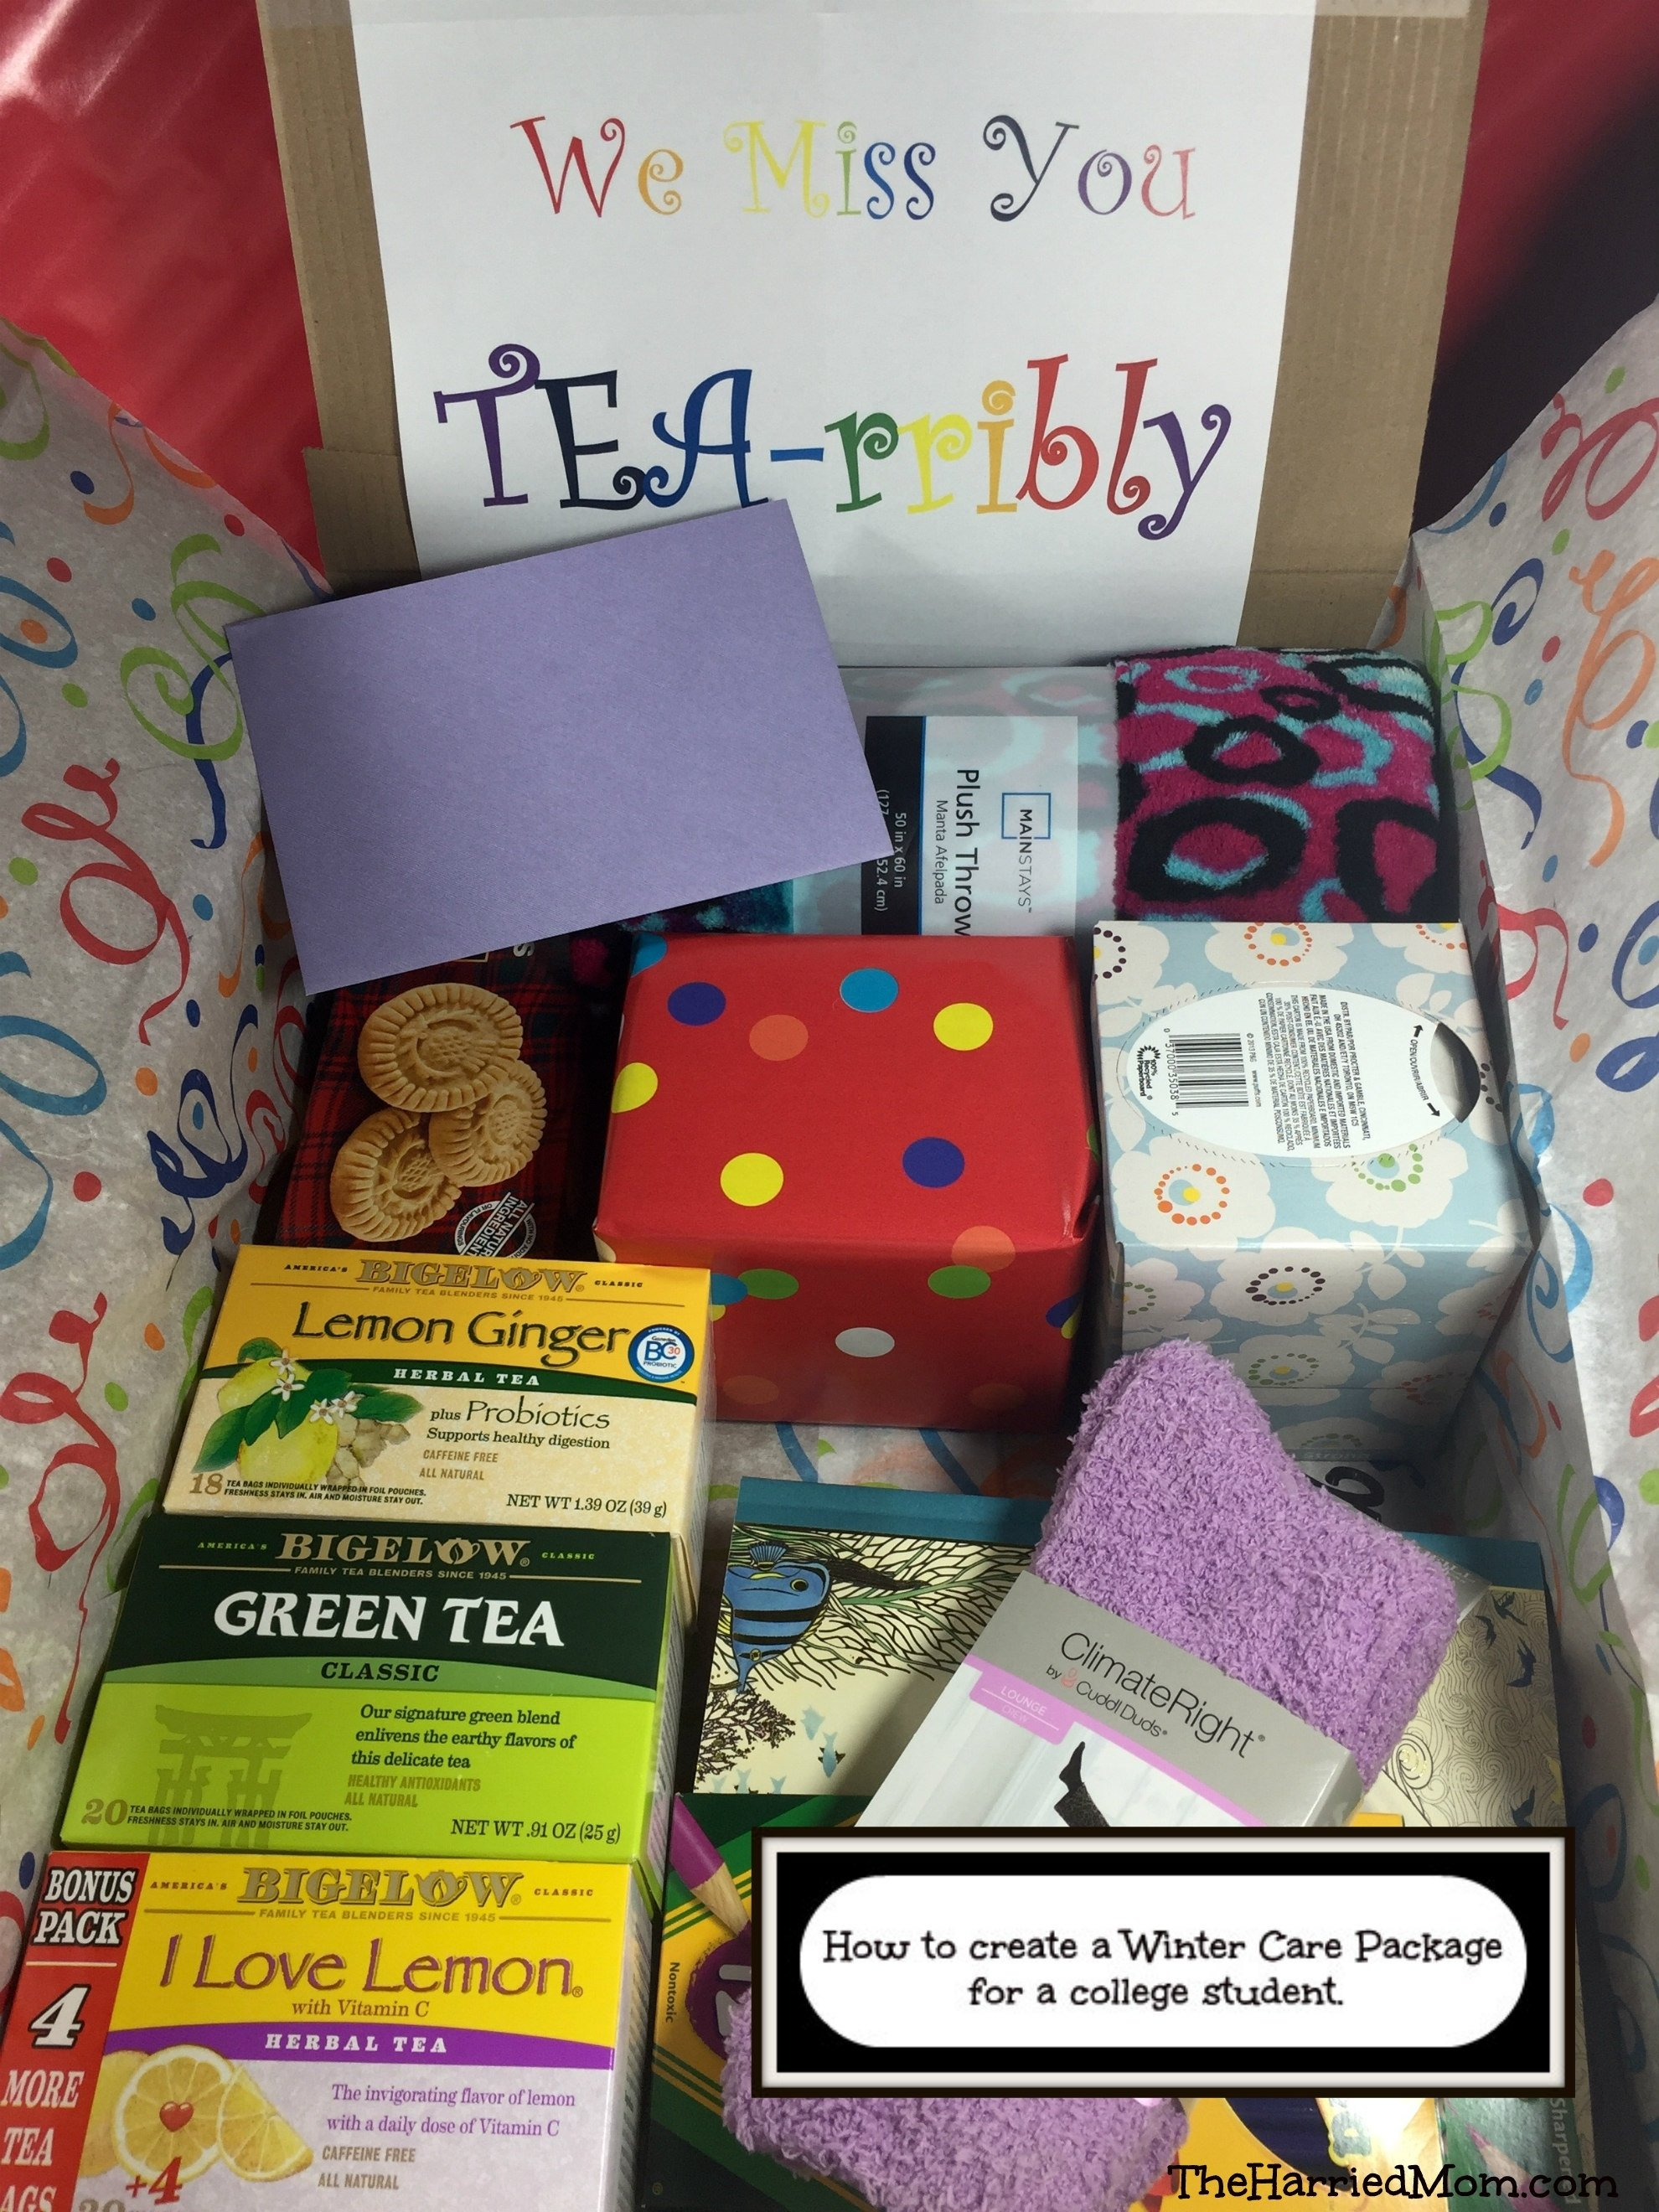 10 Trendy Care Packages For College Students Ideas how to create a winter care package for a college student 6 2021